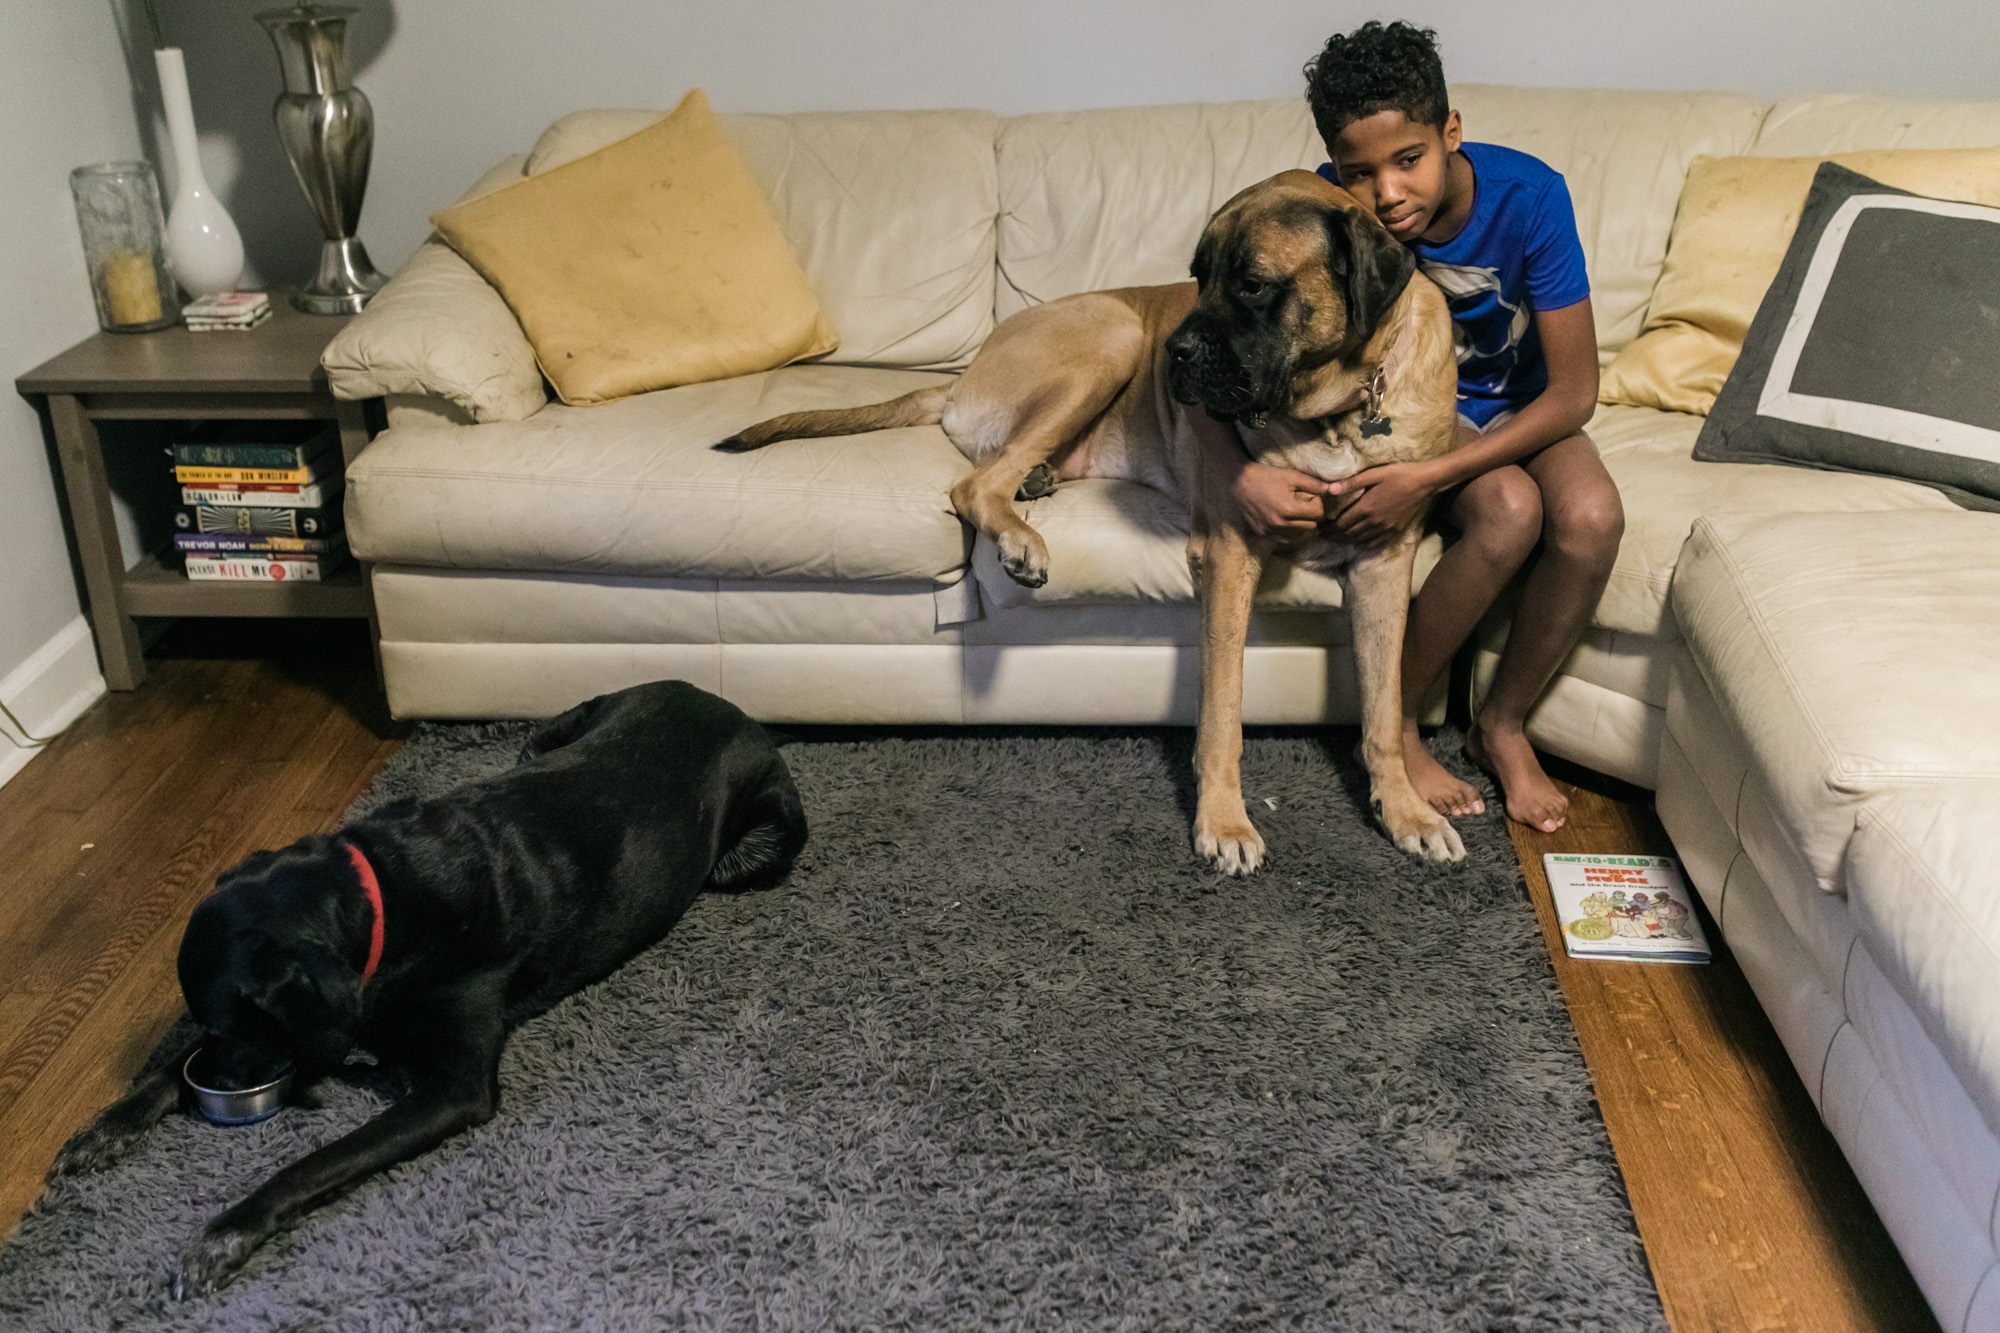 A boy sits on a couch with his arms around a large dog